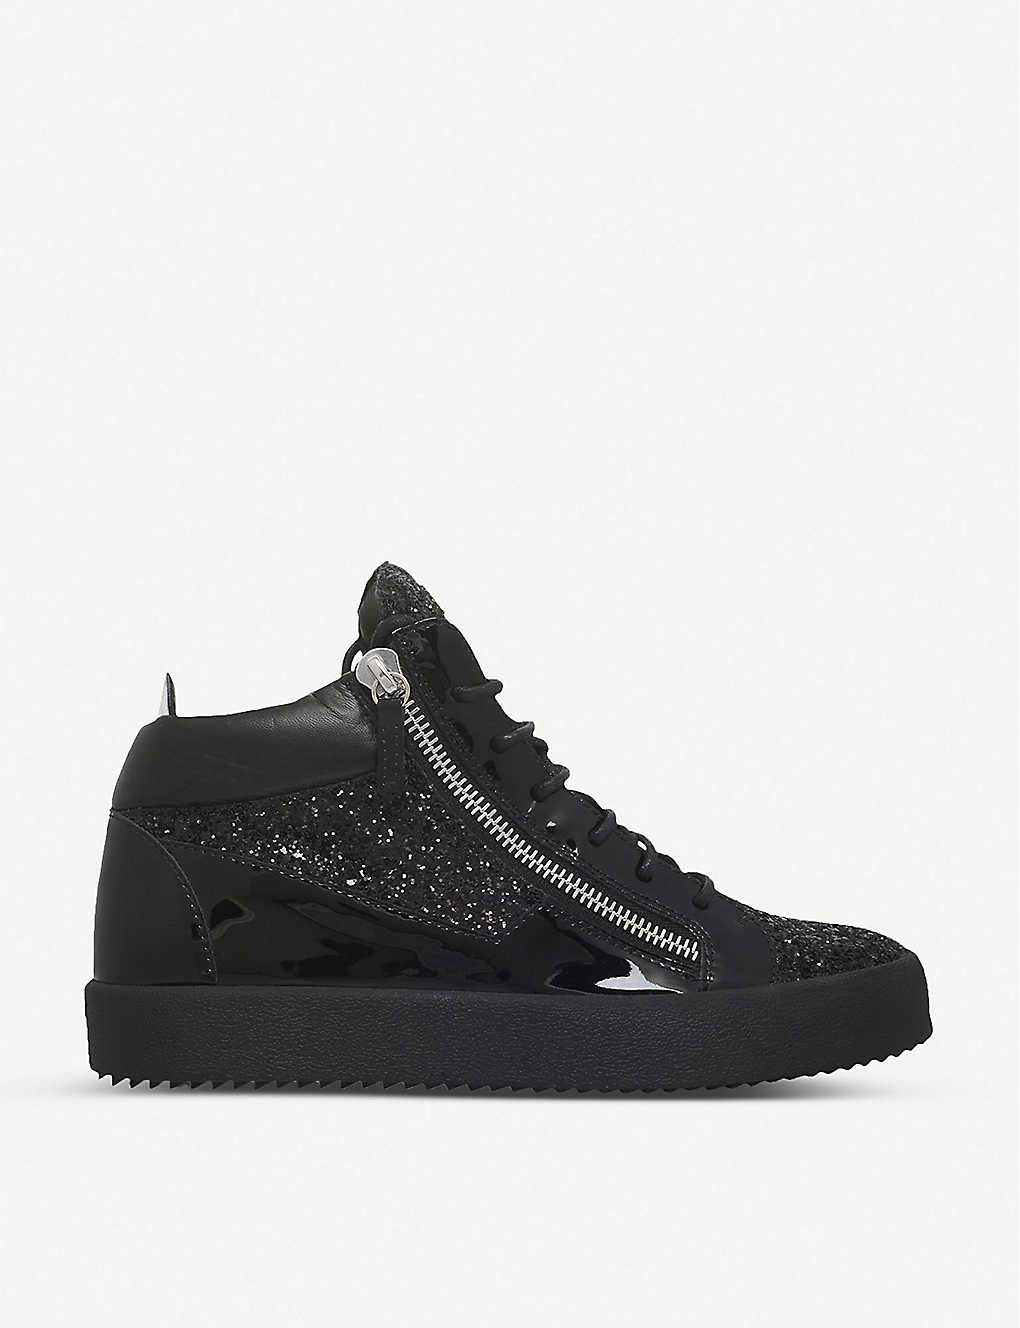 d5650810a7ed4 GIUSEPPE ZANOTTI - Mid-top leather and glitter trainers | Selfridges.com